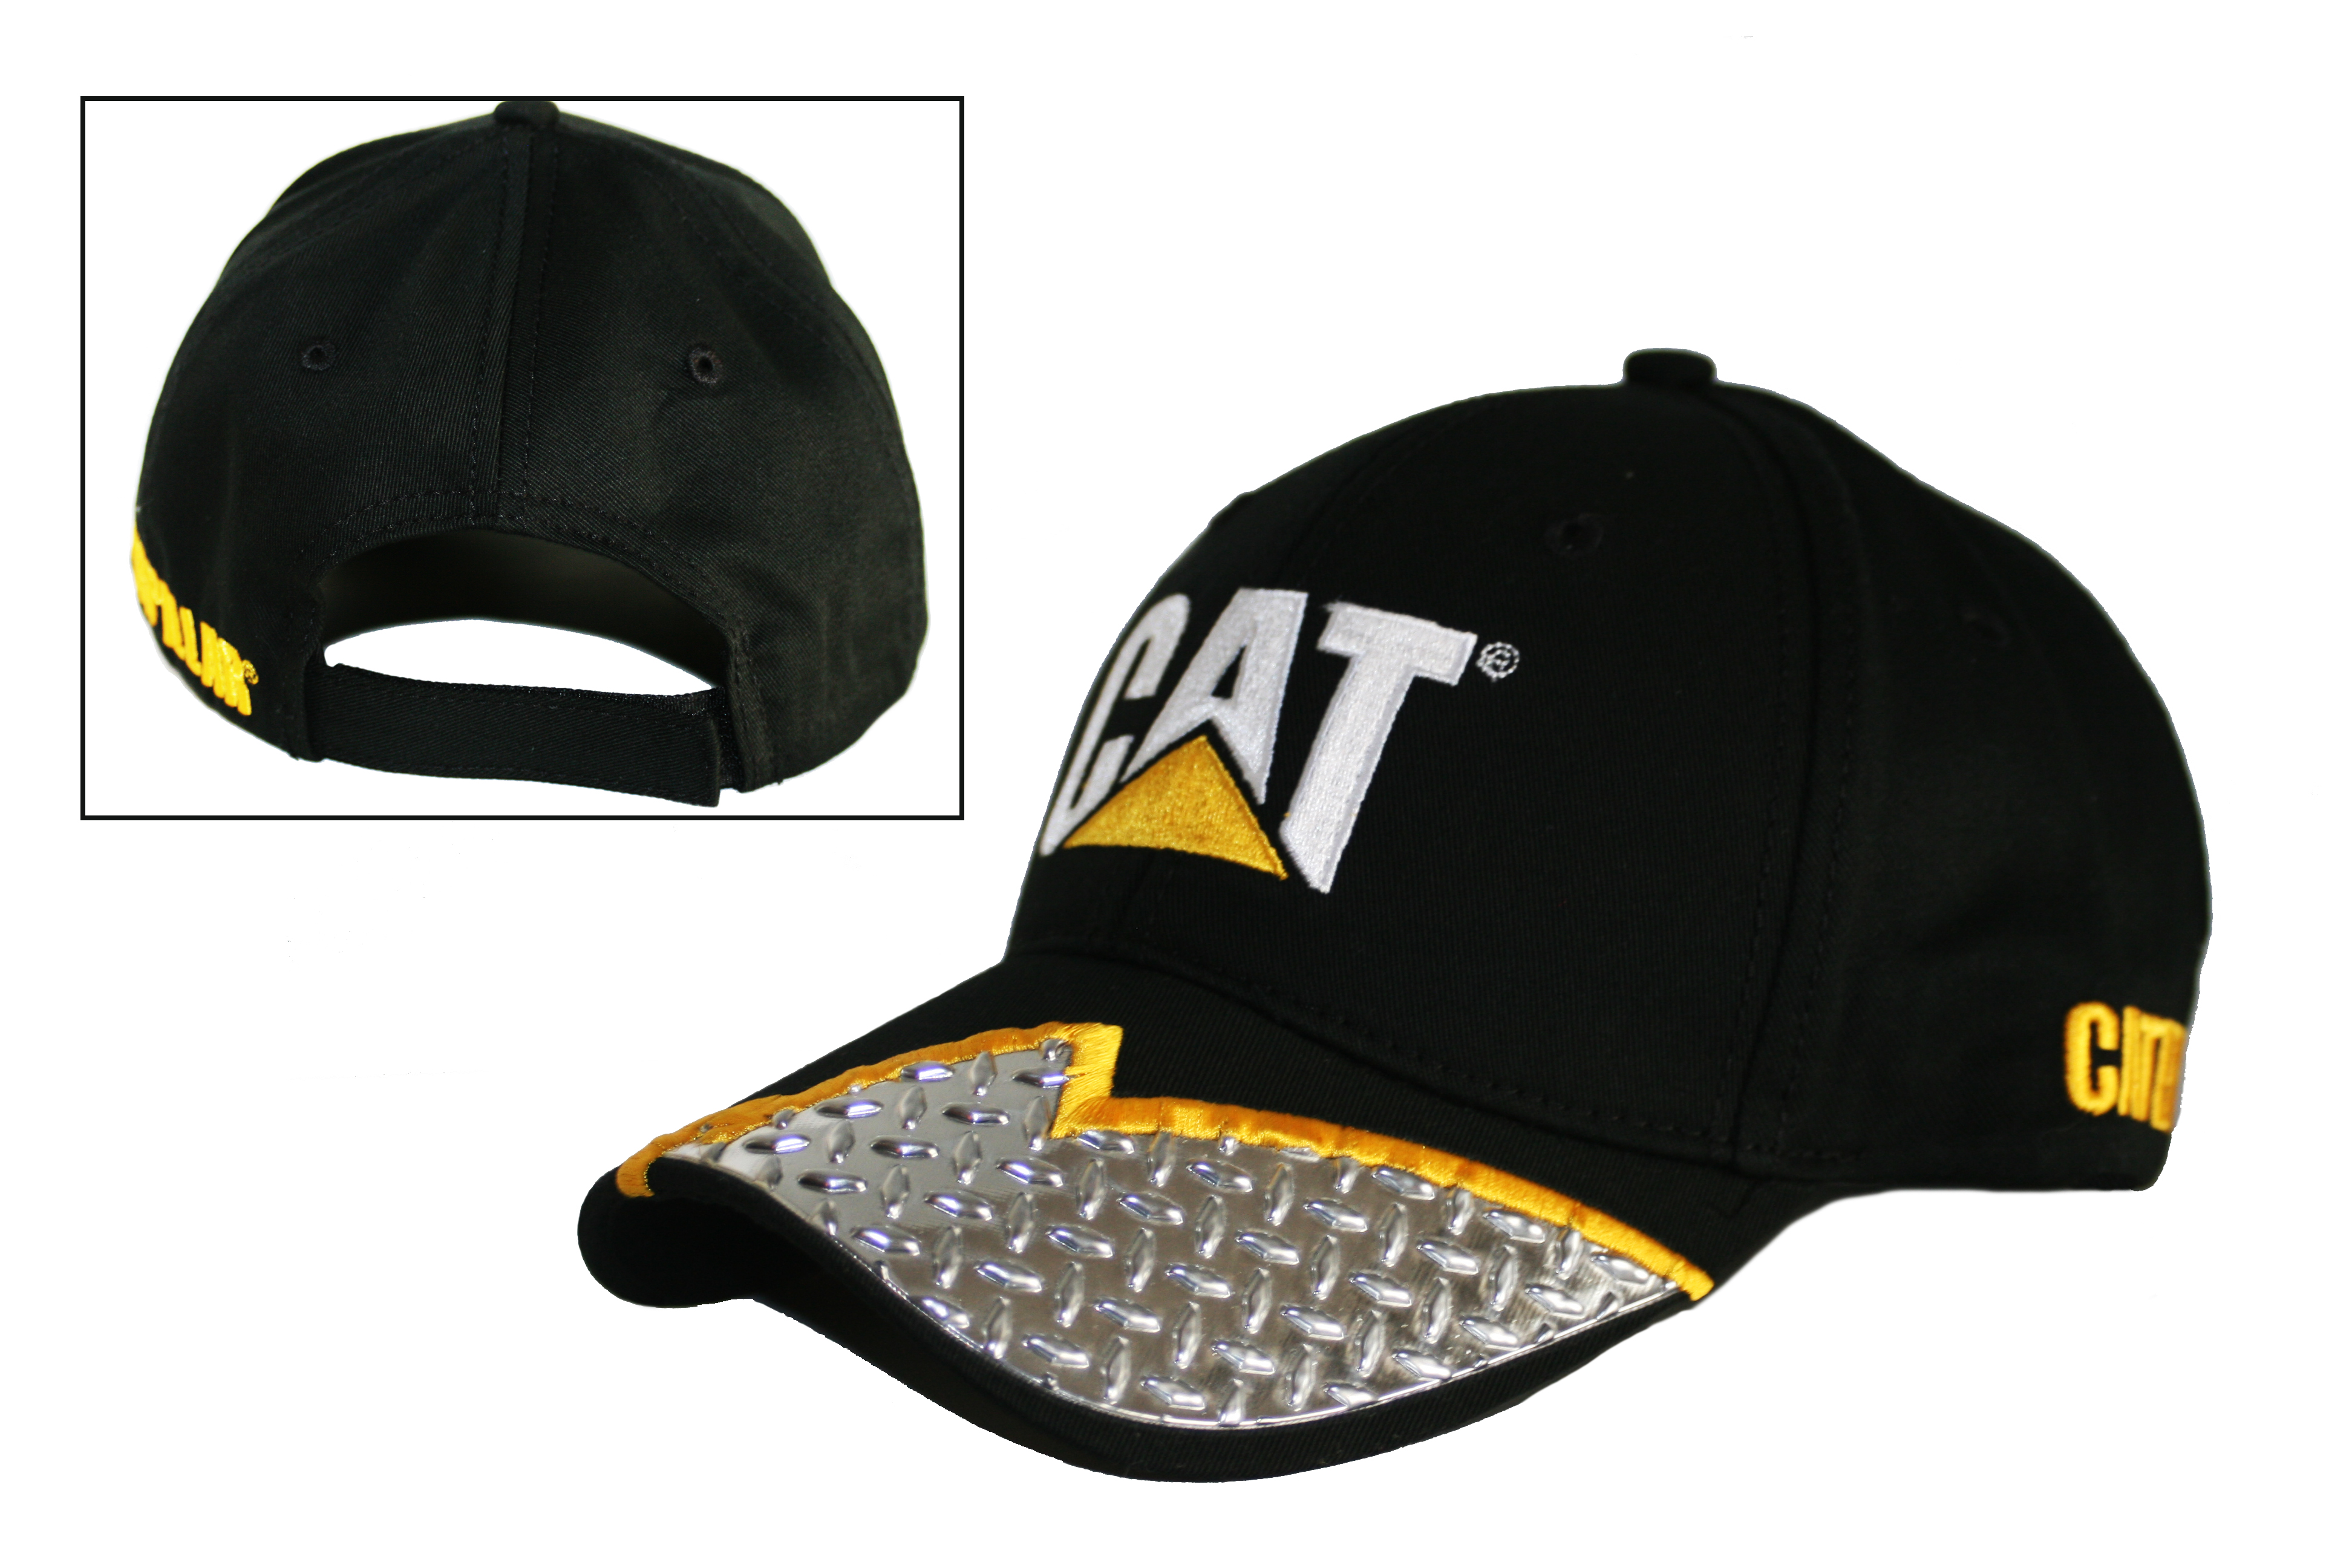 Cat Hats Cat Caps Caterpillar Cat Diamond Plate Visor